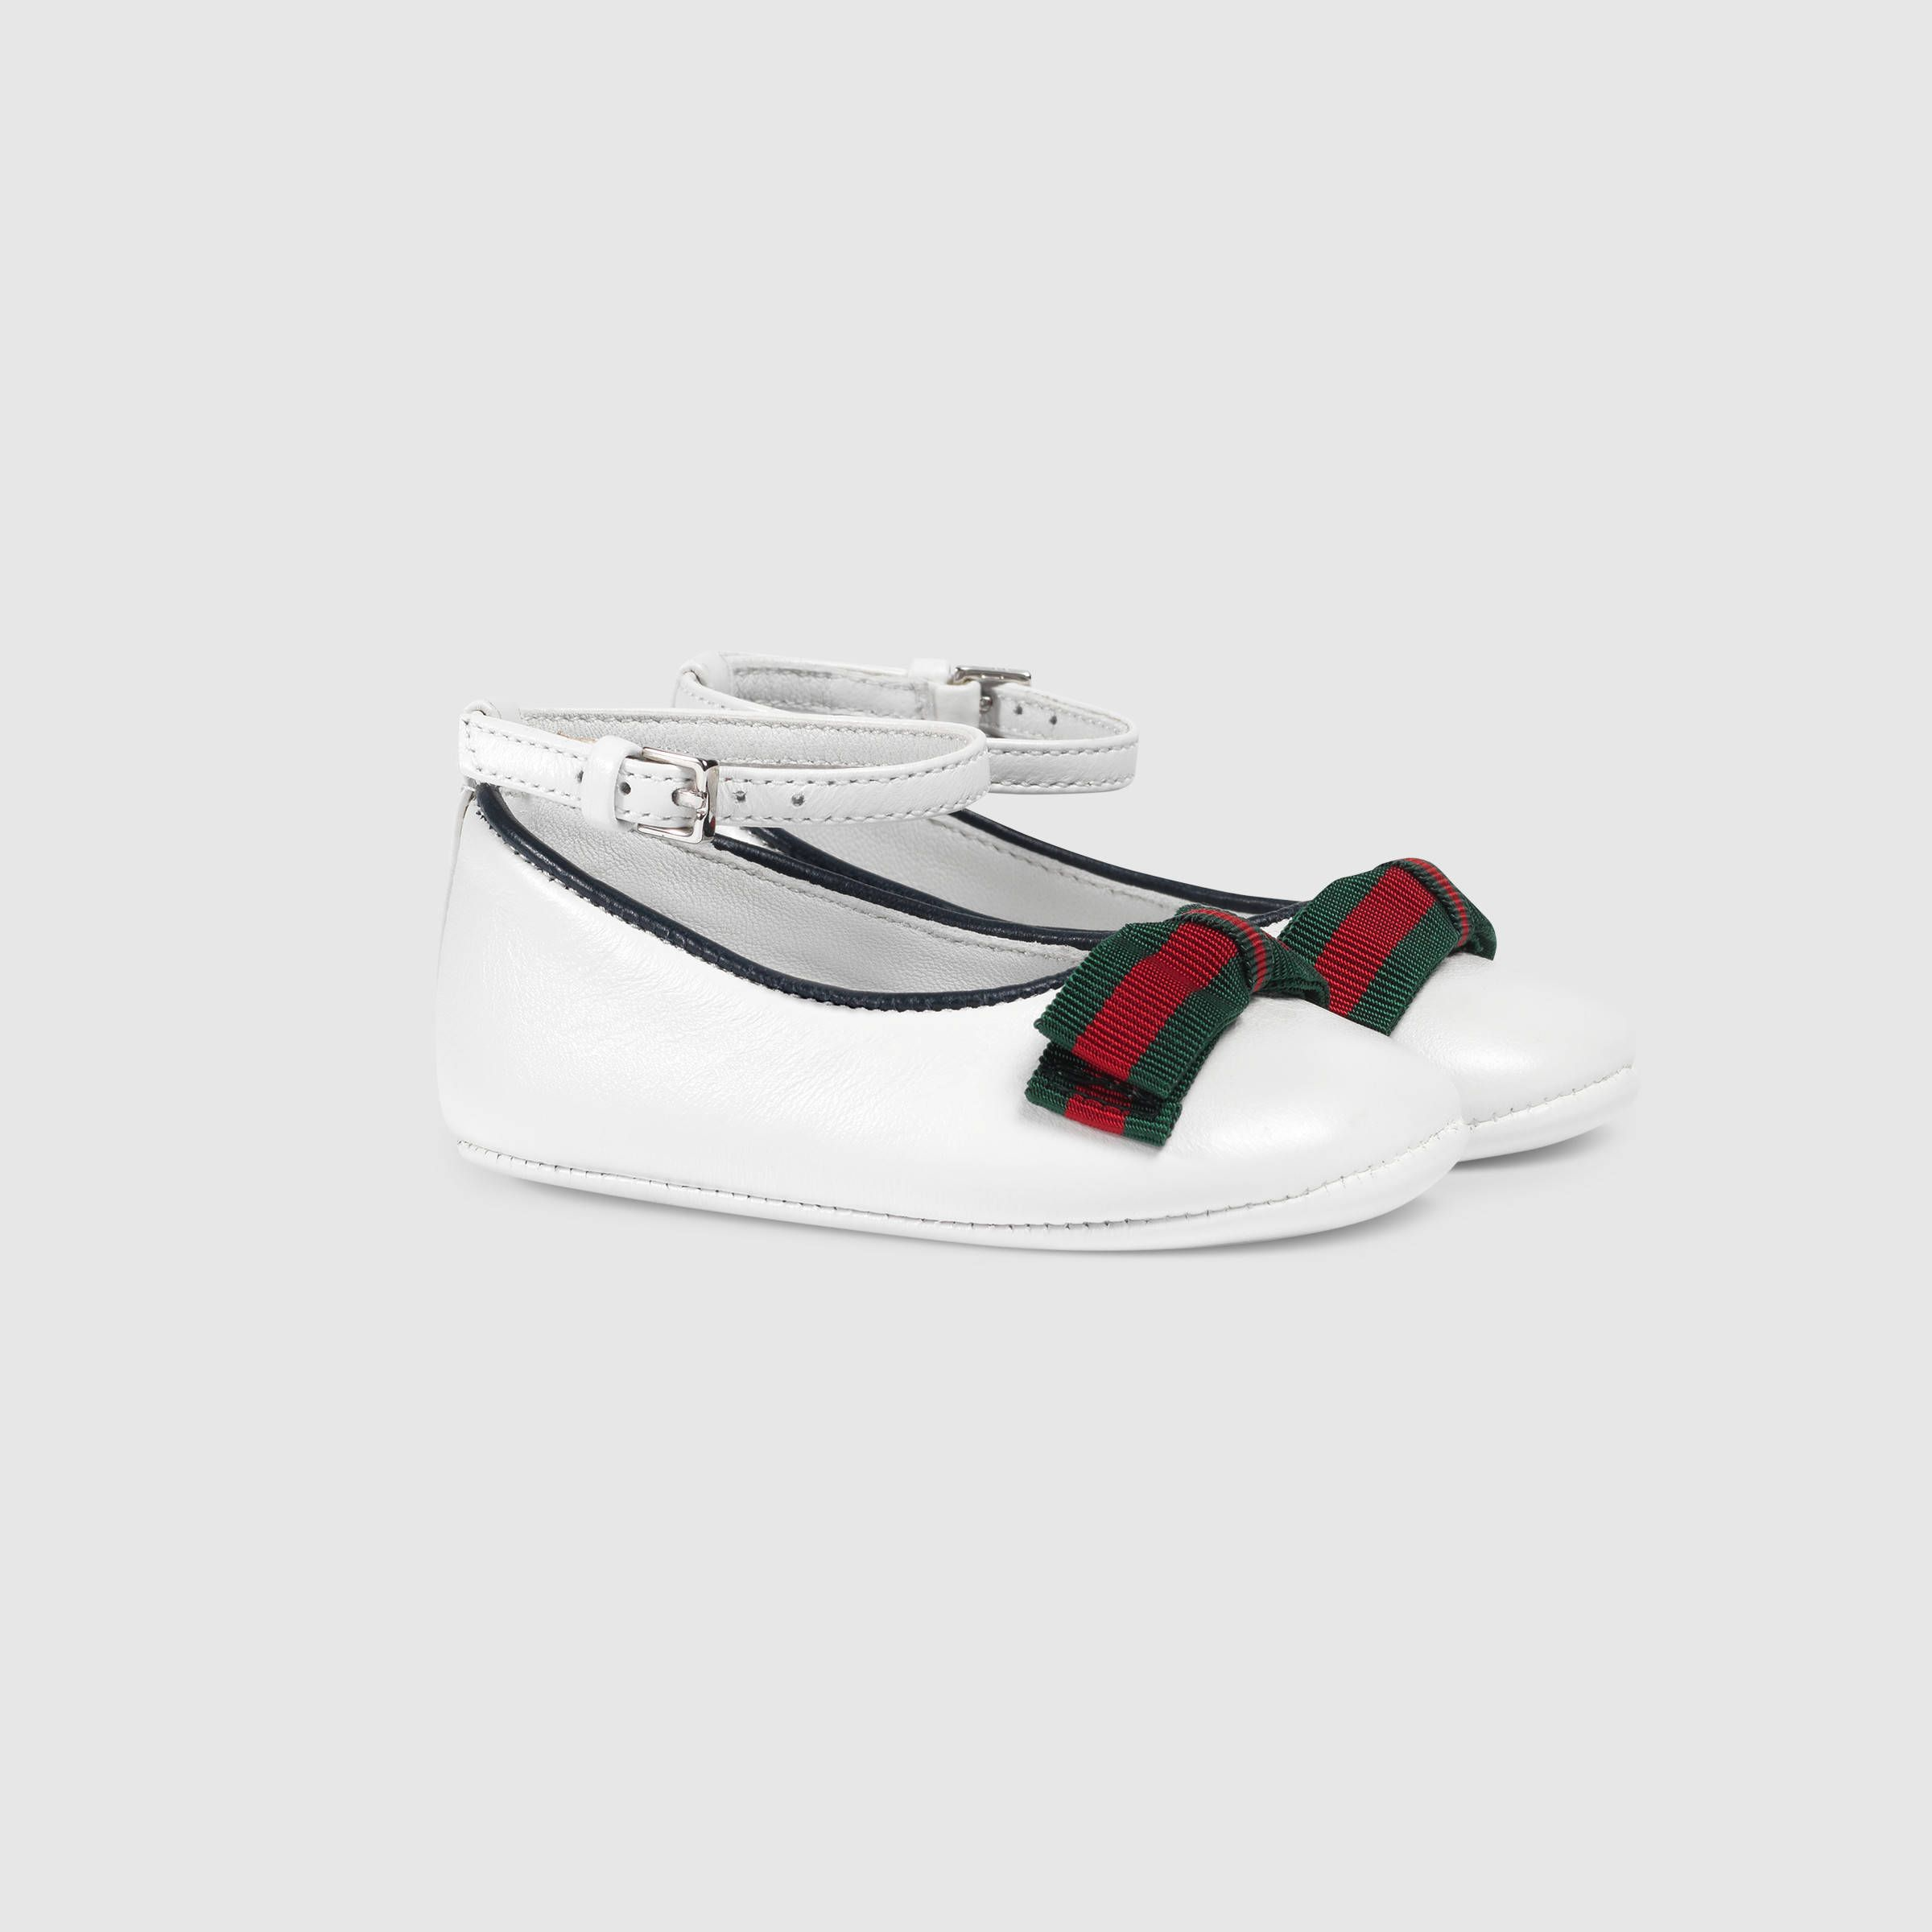 4610c3d3f Baby leather ballet flat with Web - Gucci Girls 455358BKPP09086 ...